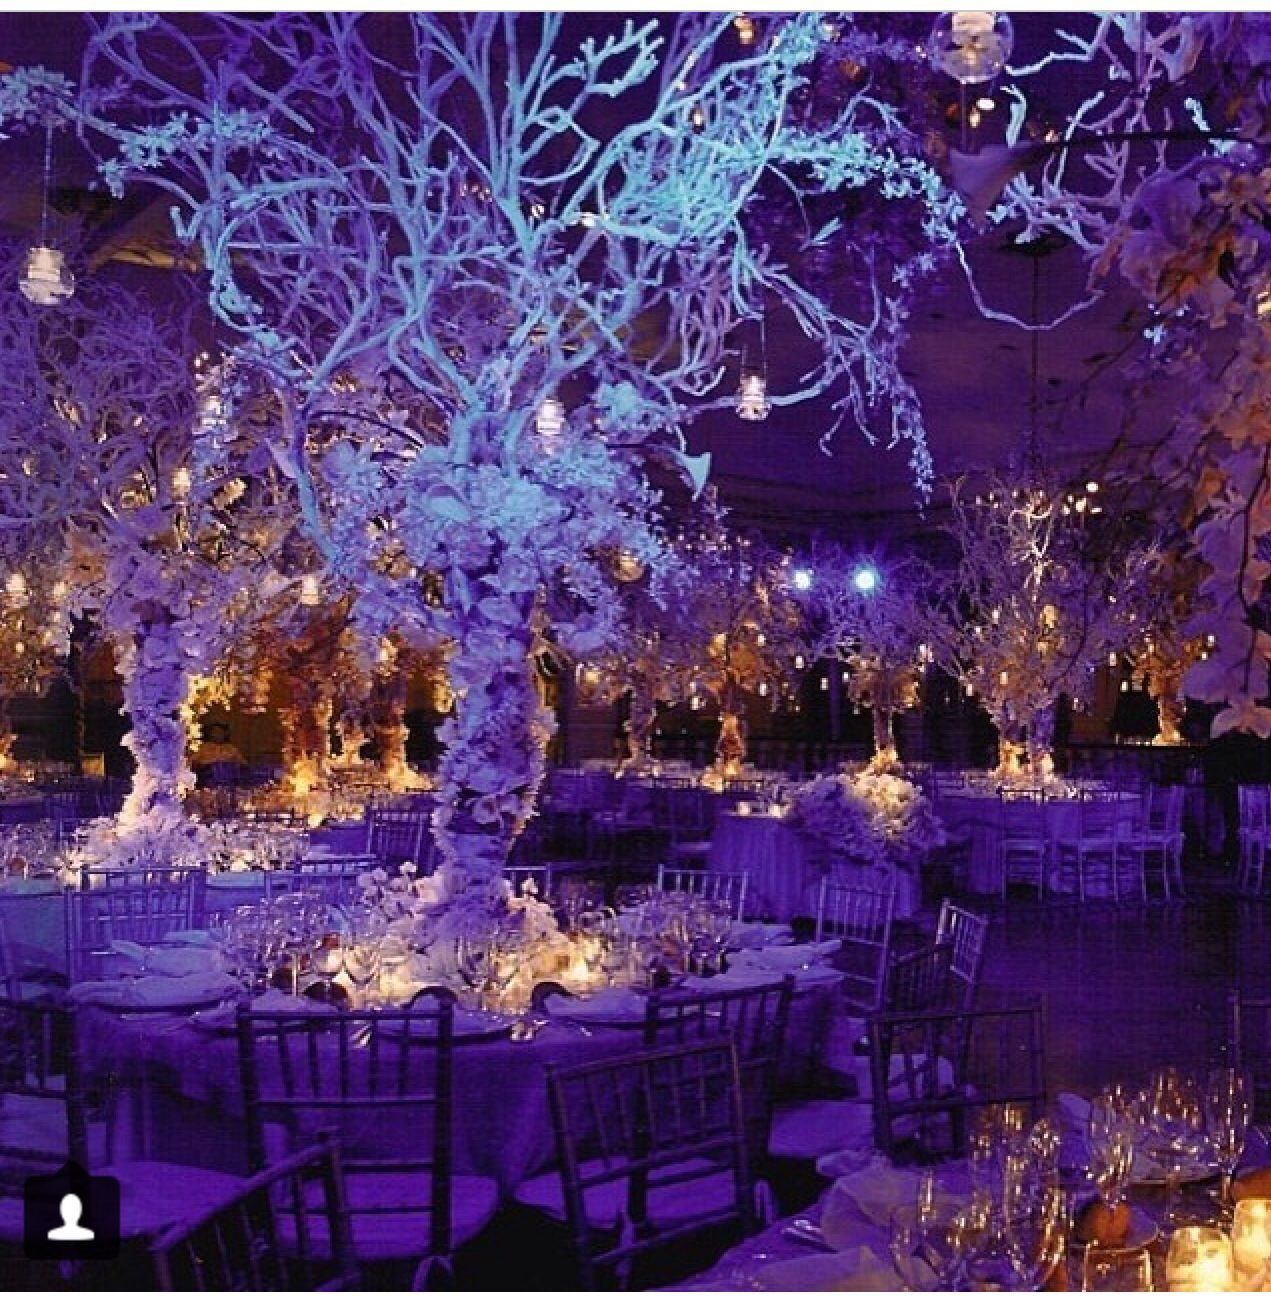 Enchanted Forest Themed Wedding Very Majestic